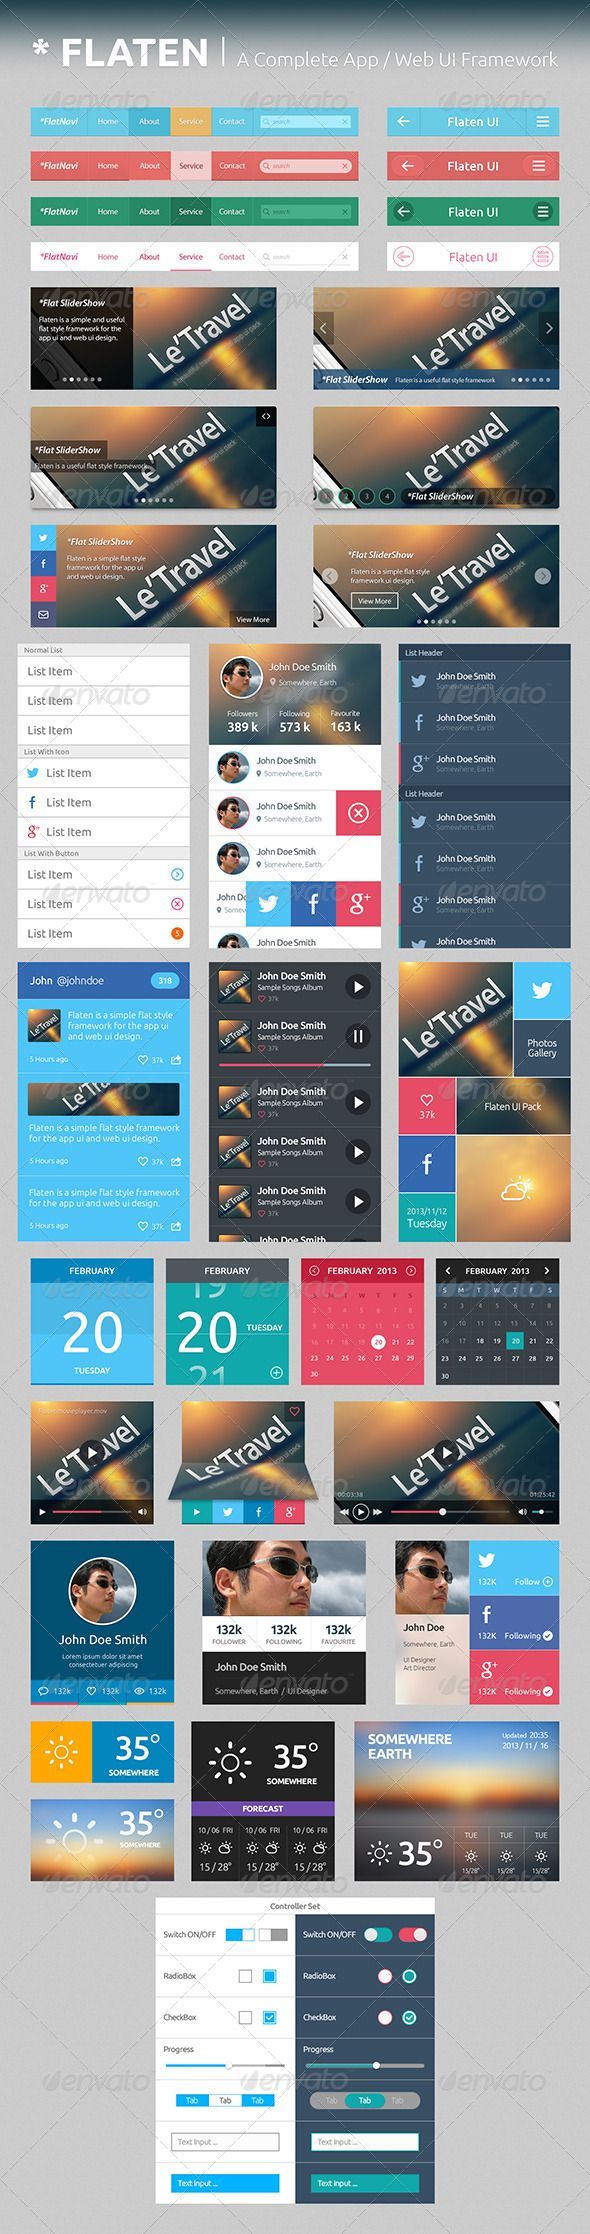 Flaten UI Framework | Flat UI Elements Pack  #GraphicRiver         General Info: Flaten UI Framework is a pack of flat ui elements that can help you to build up your flat style apps and websites quickly and easily .  Features:   Including all your needed UI elements  100% vector shapes – easy to edit and scale  Easy Changeable Colors  Always Update    More: We will always update this pack of UI elements, more elements will be added! Purchase once and get free update forever!  …